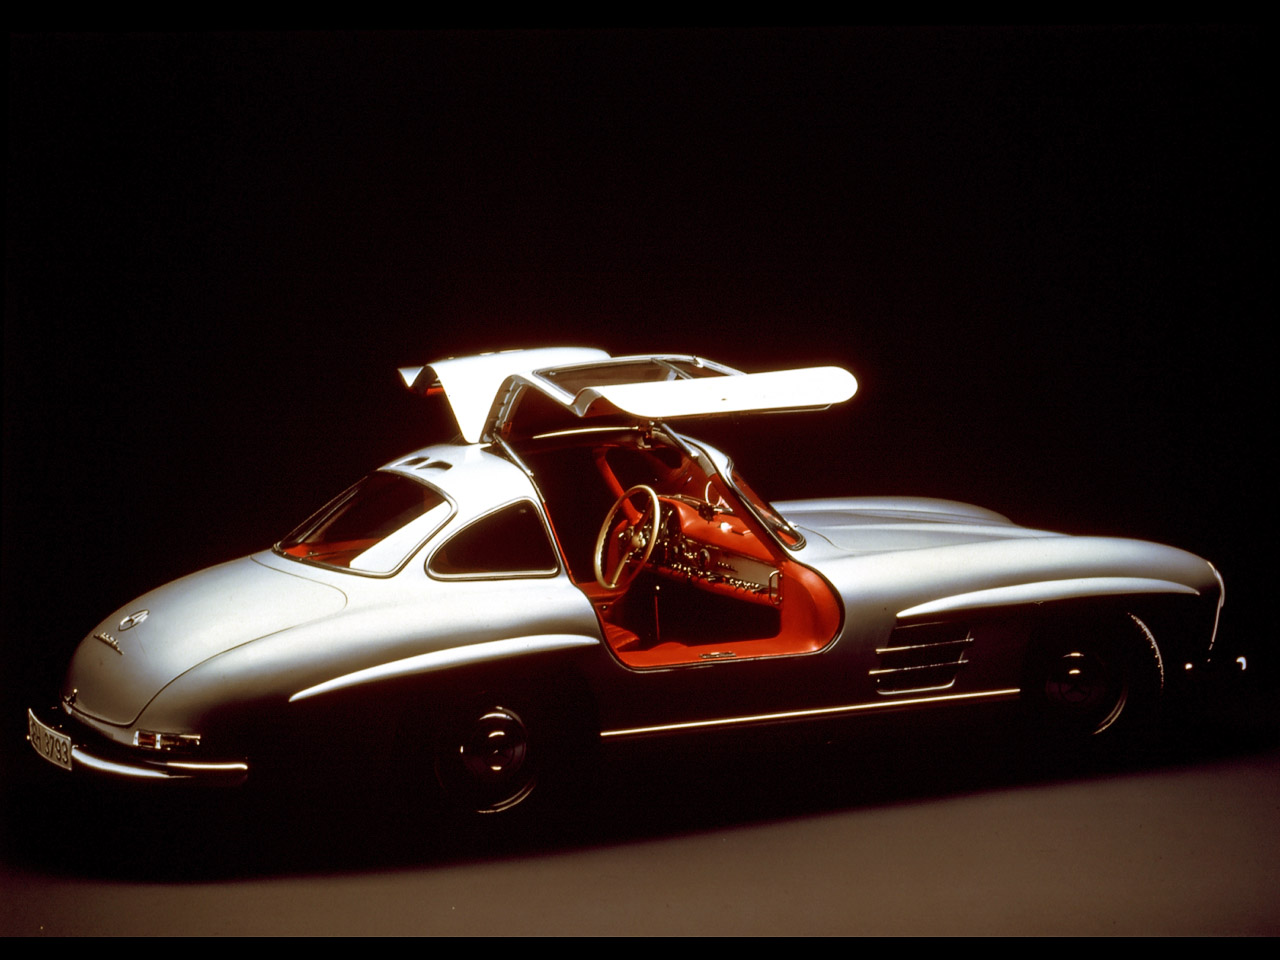 mercedes-benz 300 sl coupe-pic. 2